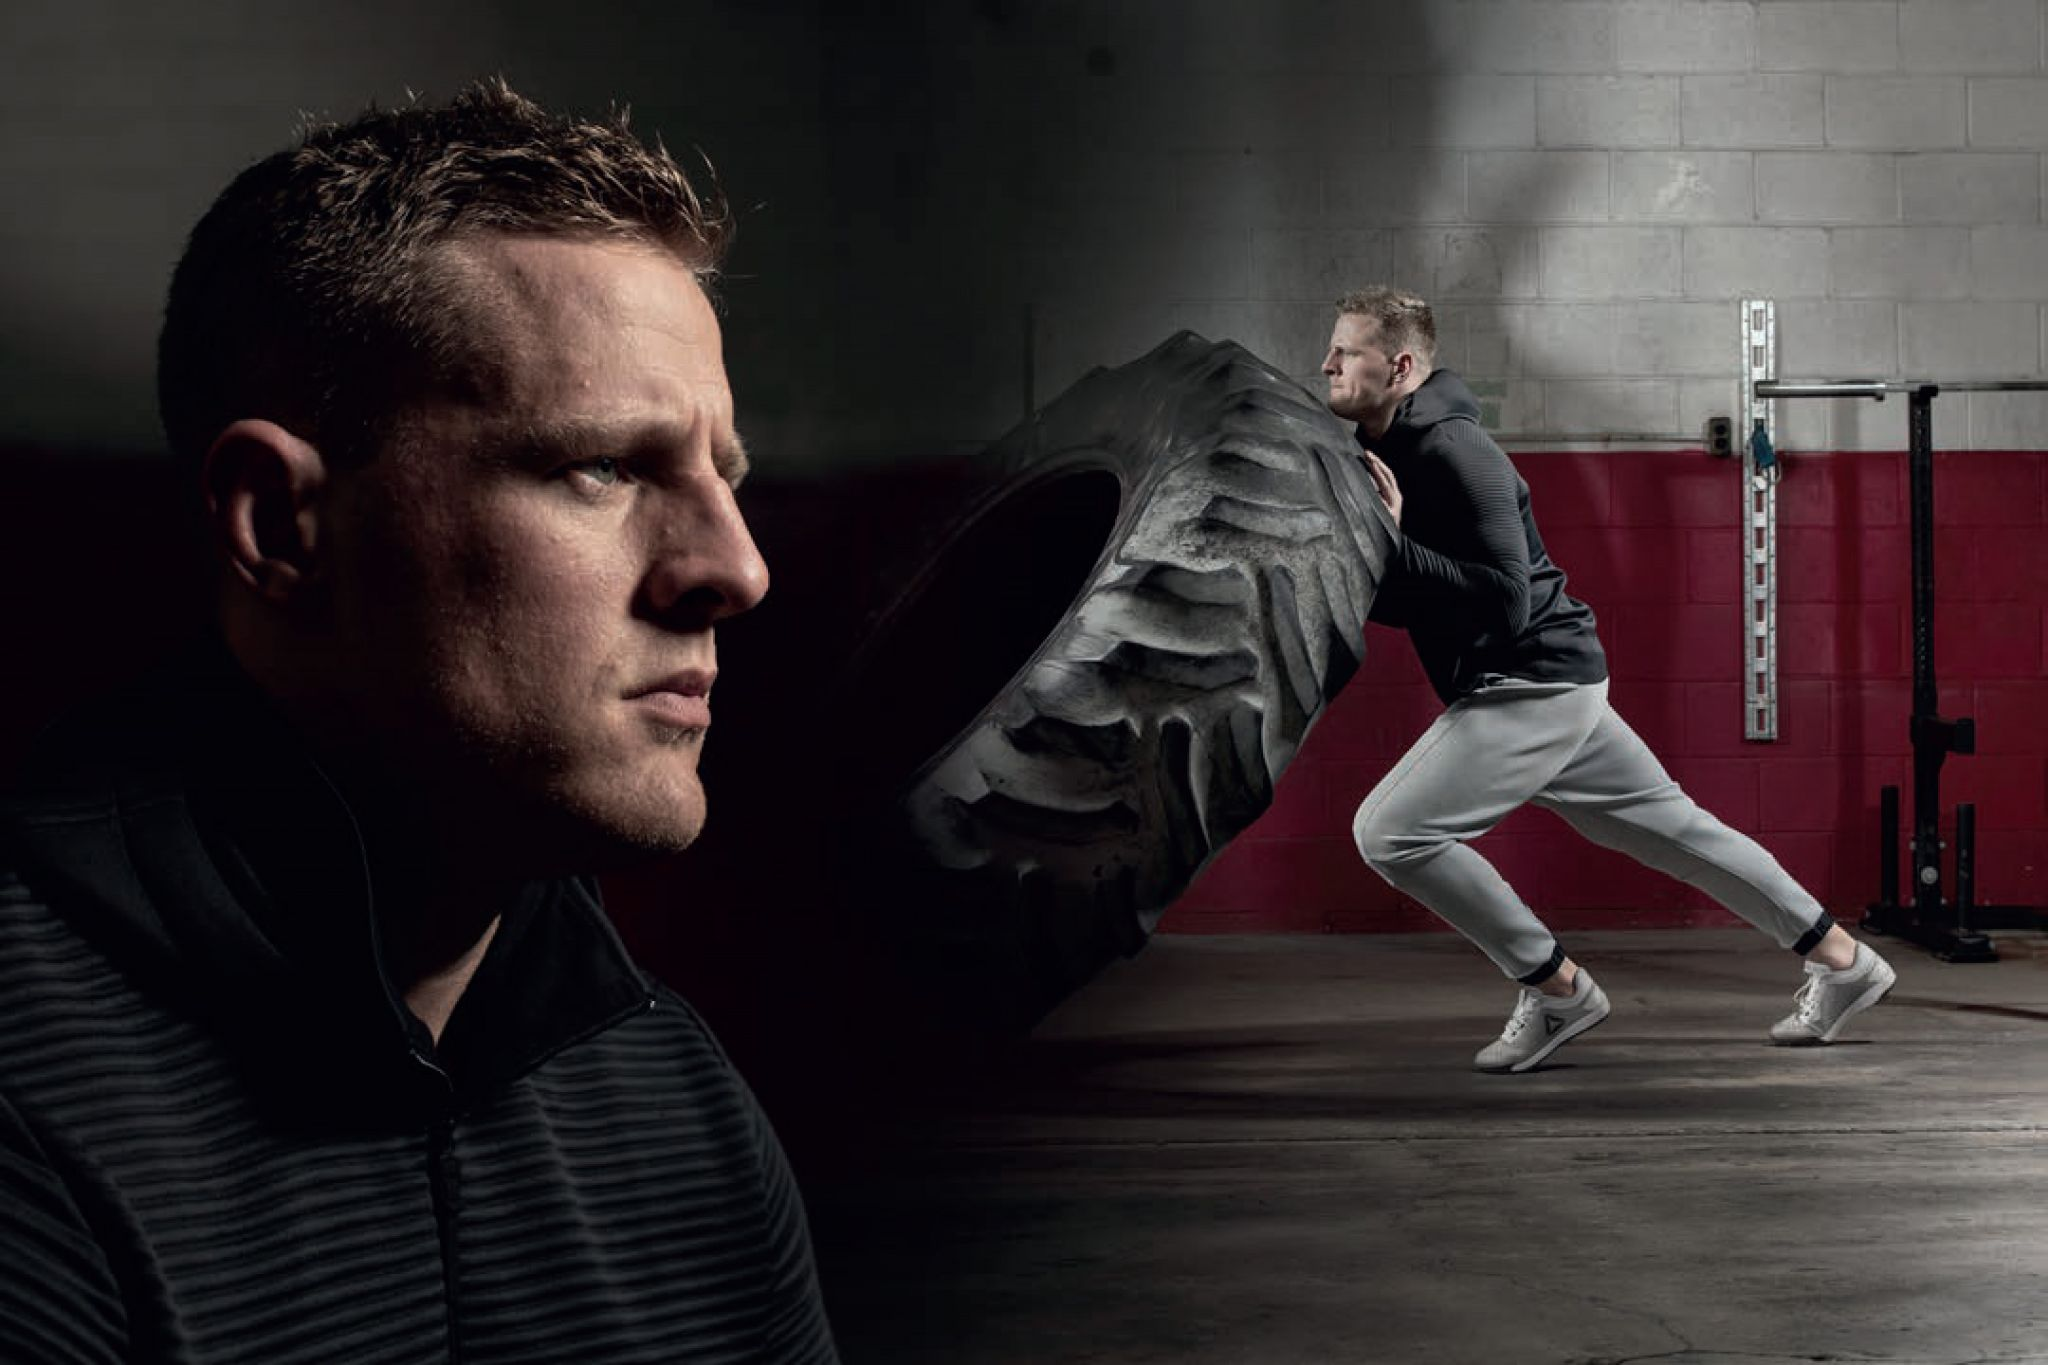 62c995559a9c6 J.J. Watt releases new Reebok colorway in honor of Navy SEALs ...